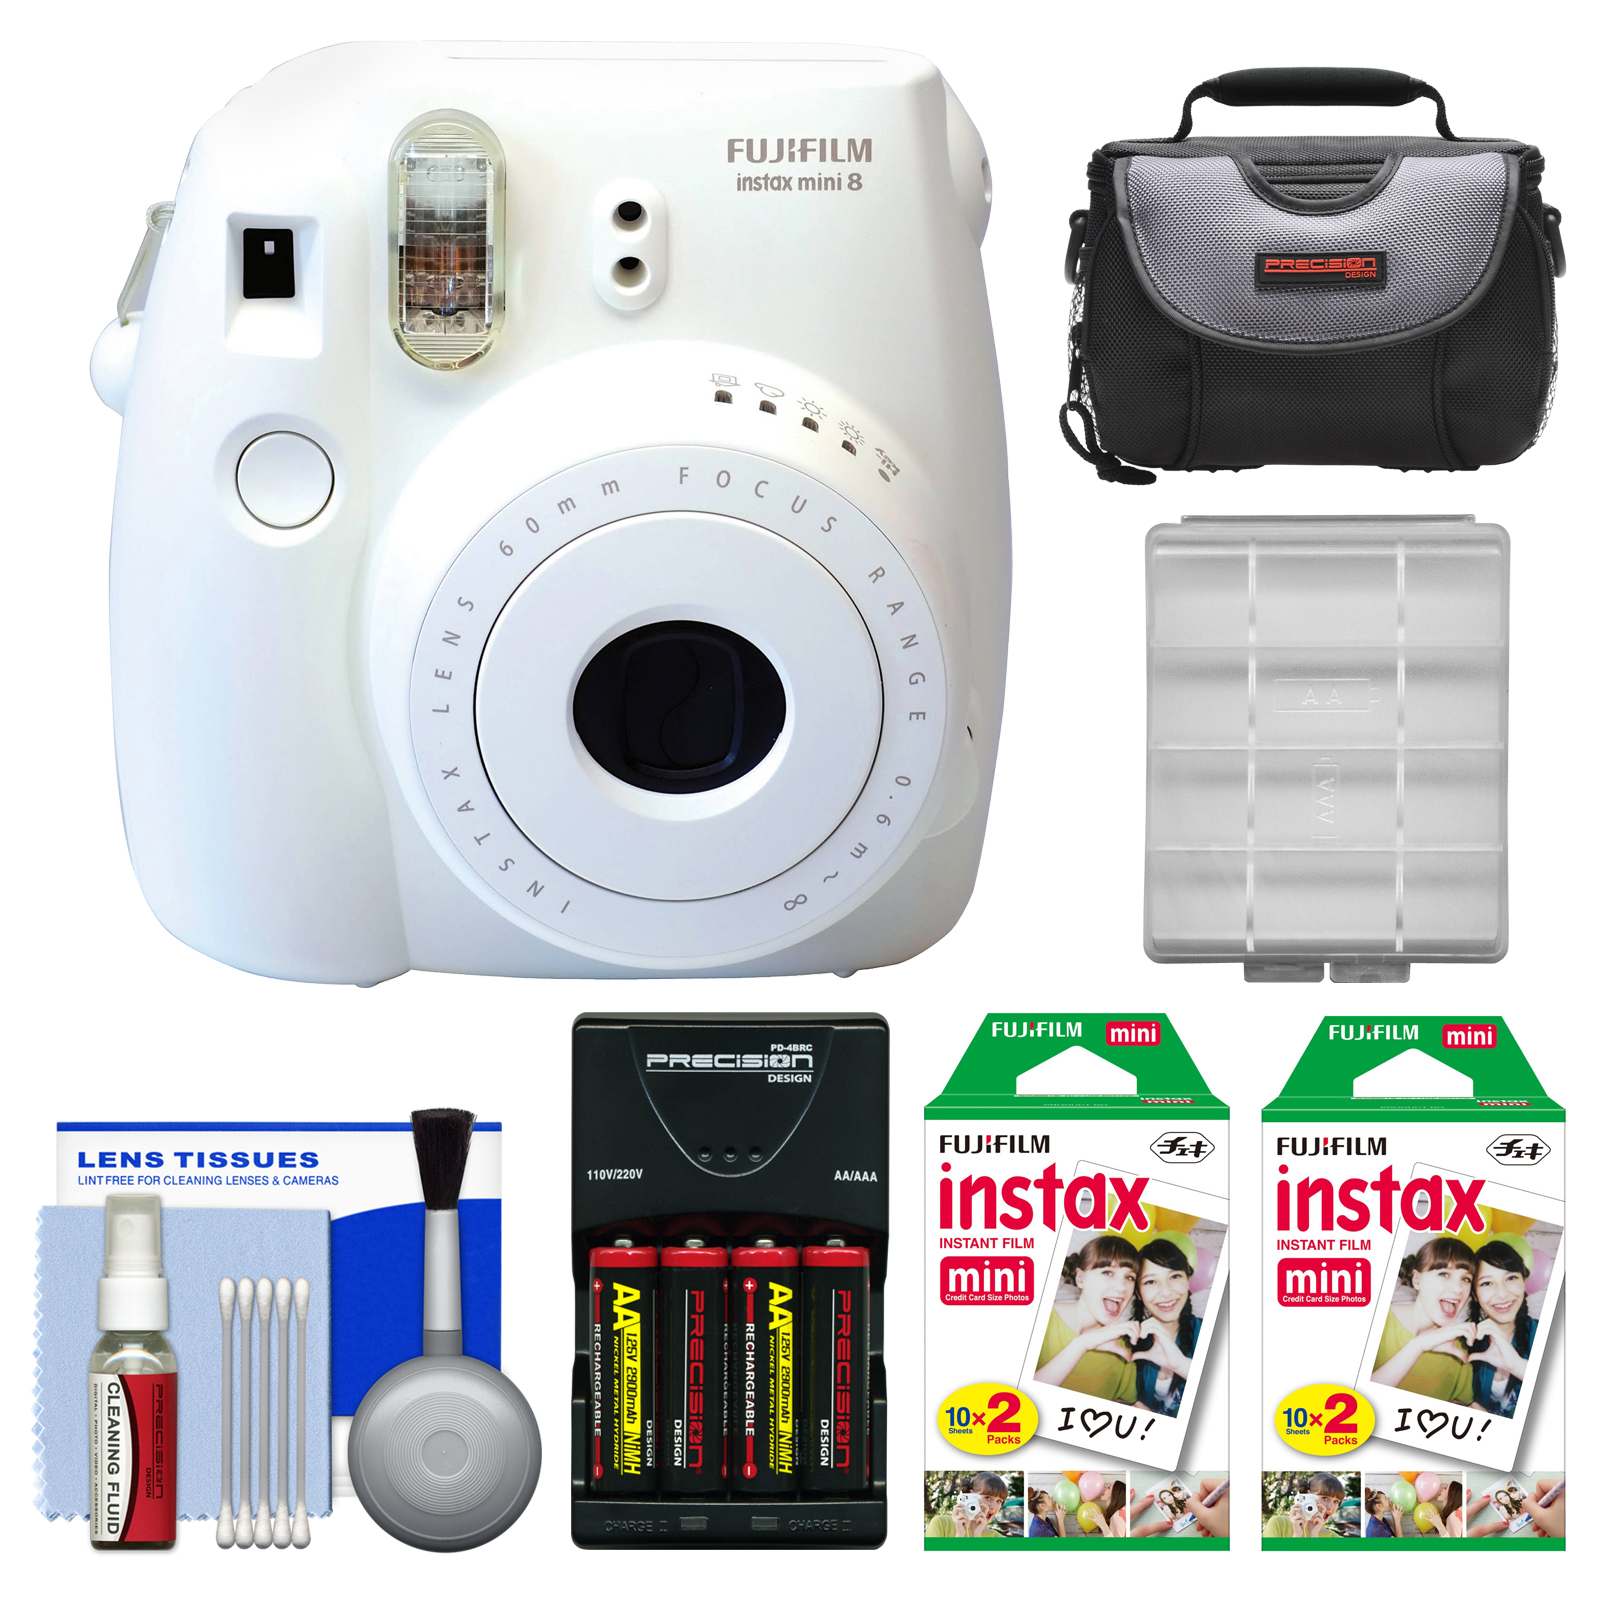 Fujifilm Instax Mini 8 Instant Film Camera (White) with 40 Instant Film + Case + Batteries & Charger + Kit